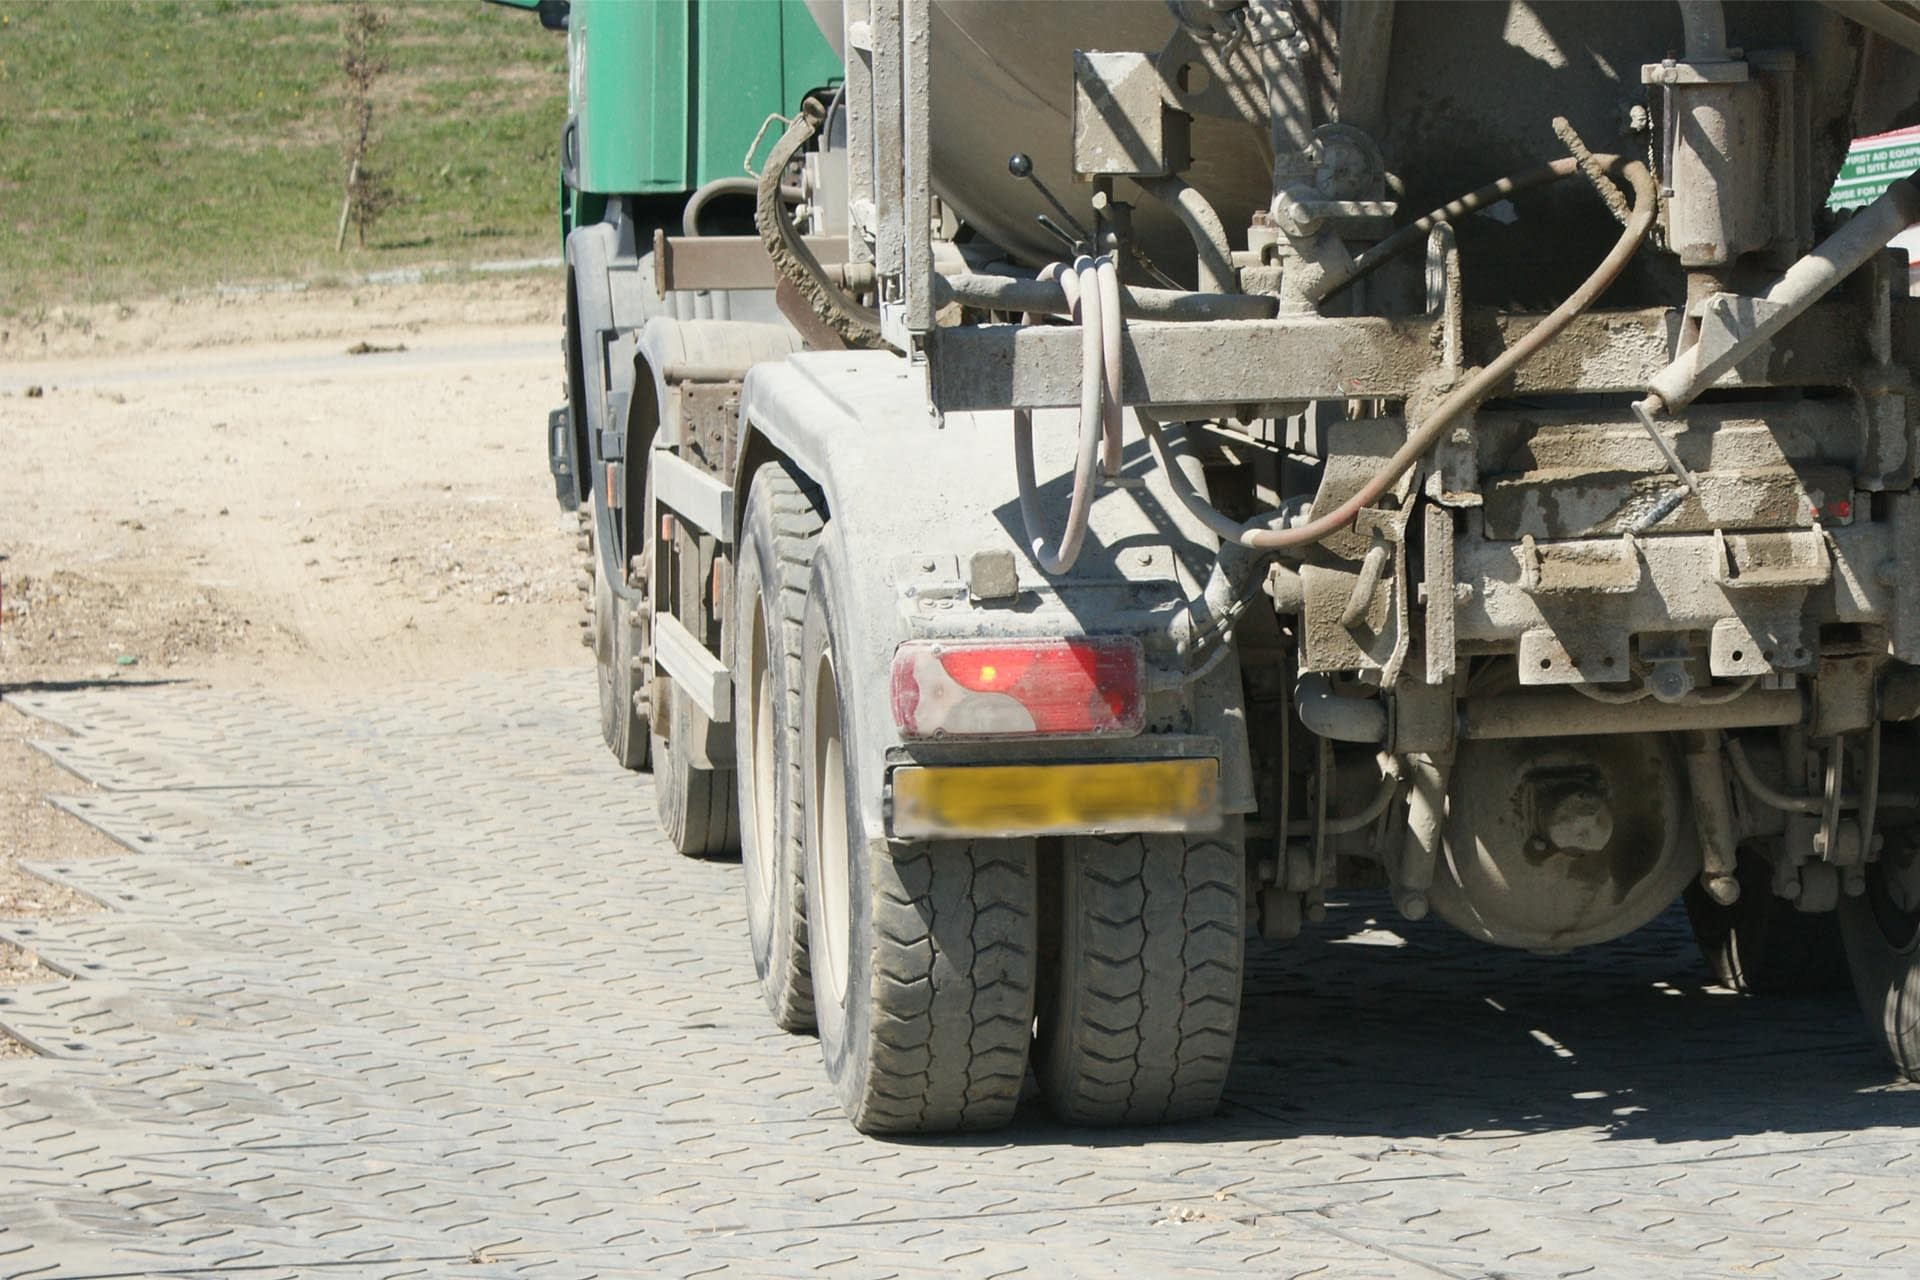 eurotrak-hd-access-mat-ground-protection-temporary-access-in-use-lorry-spoilboard